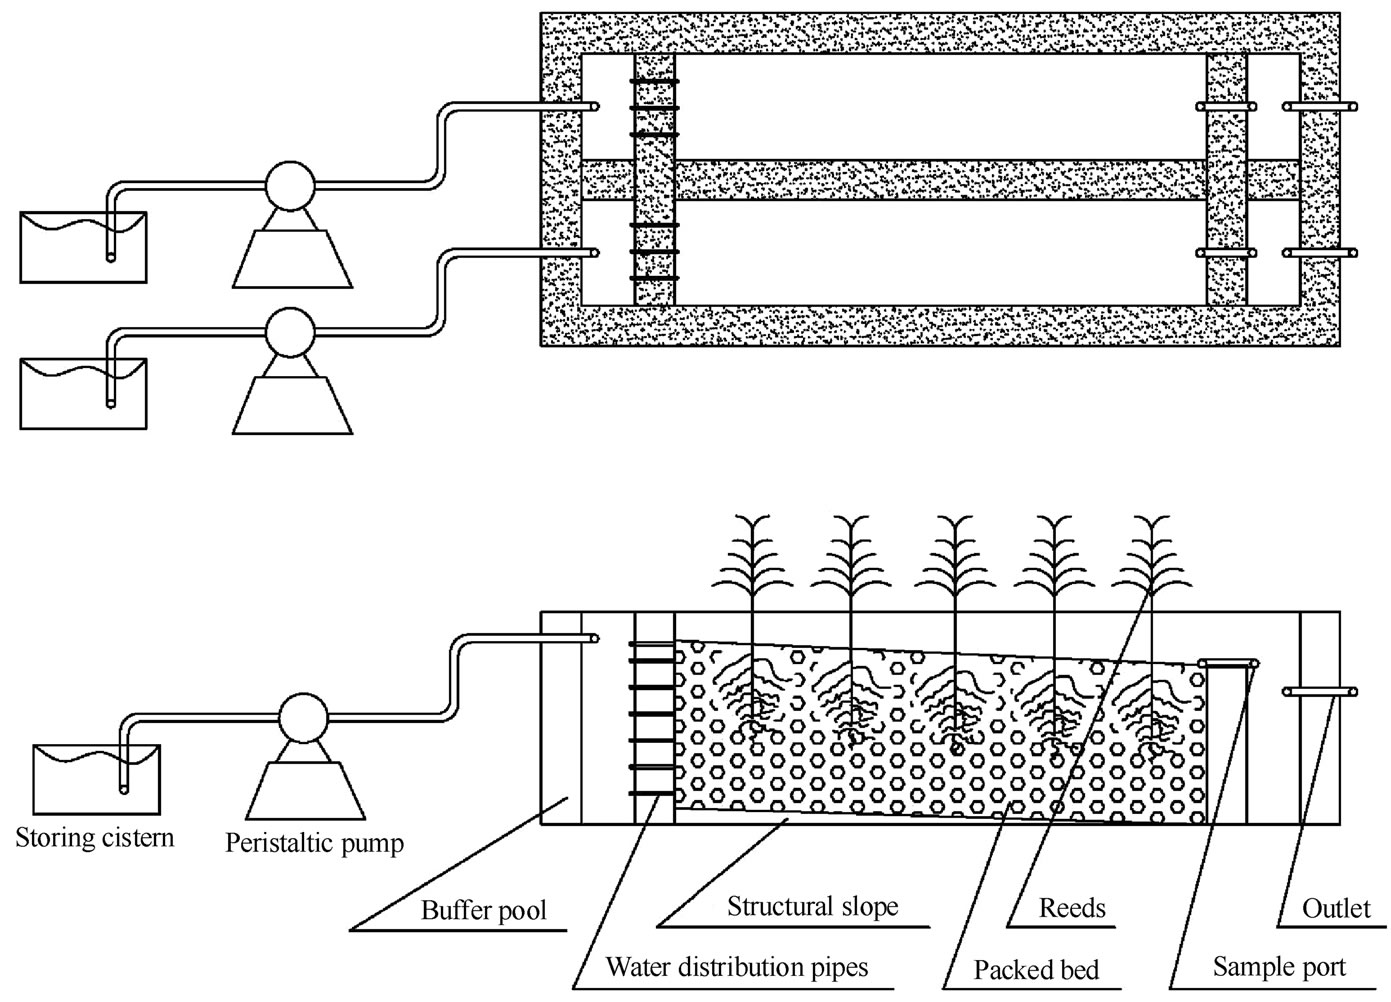 Study On The Heavy Metals Removal Efficiencies Of Constructed Wetlands With Different Substrates